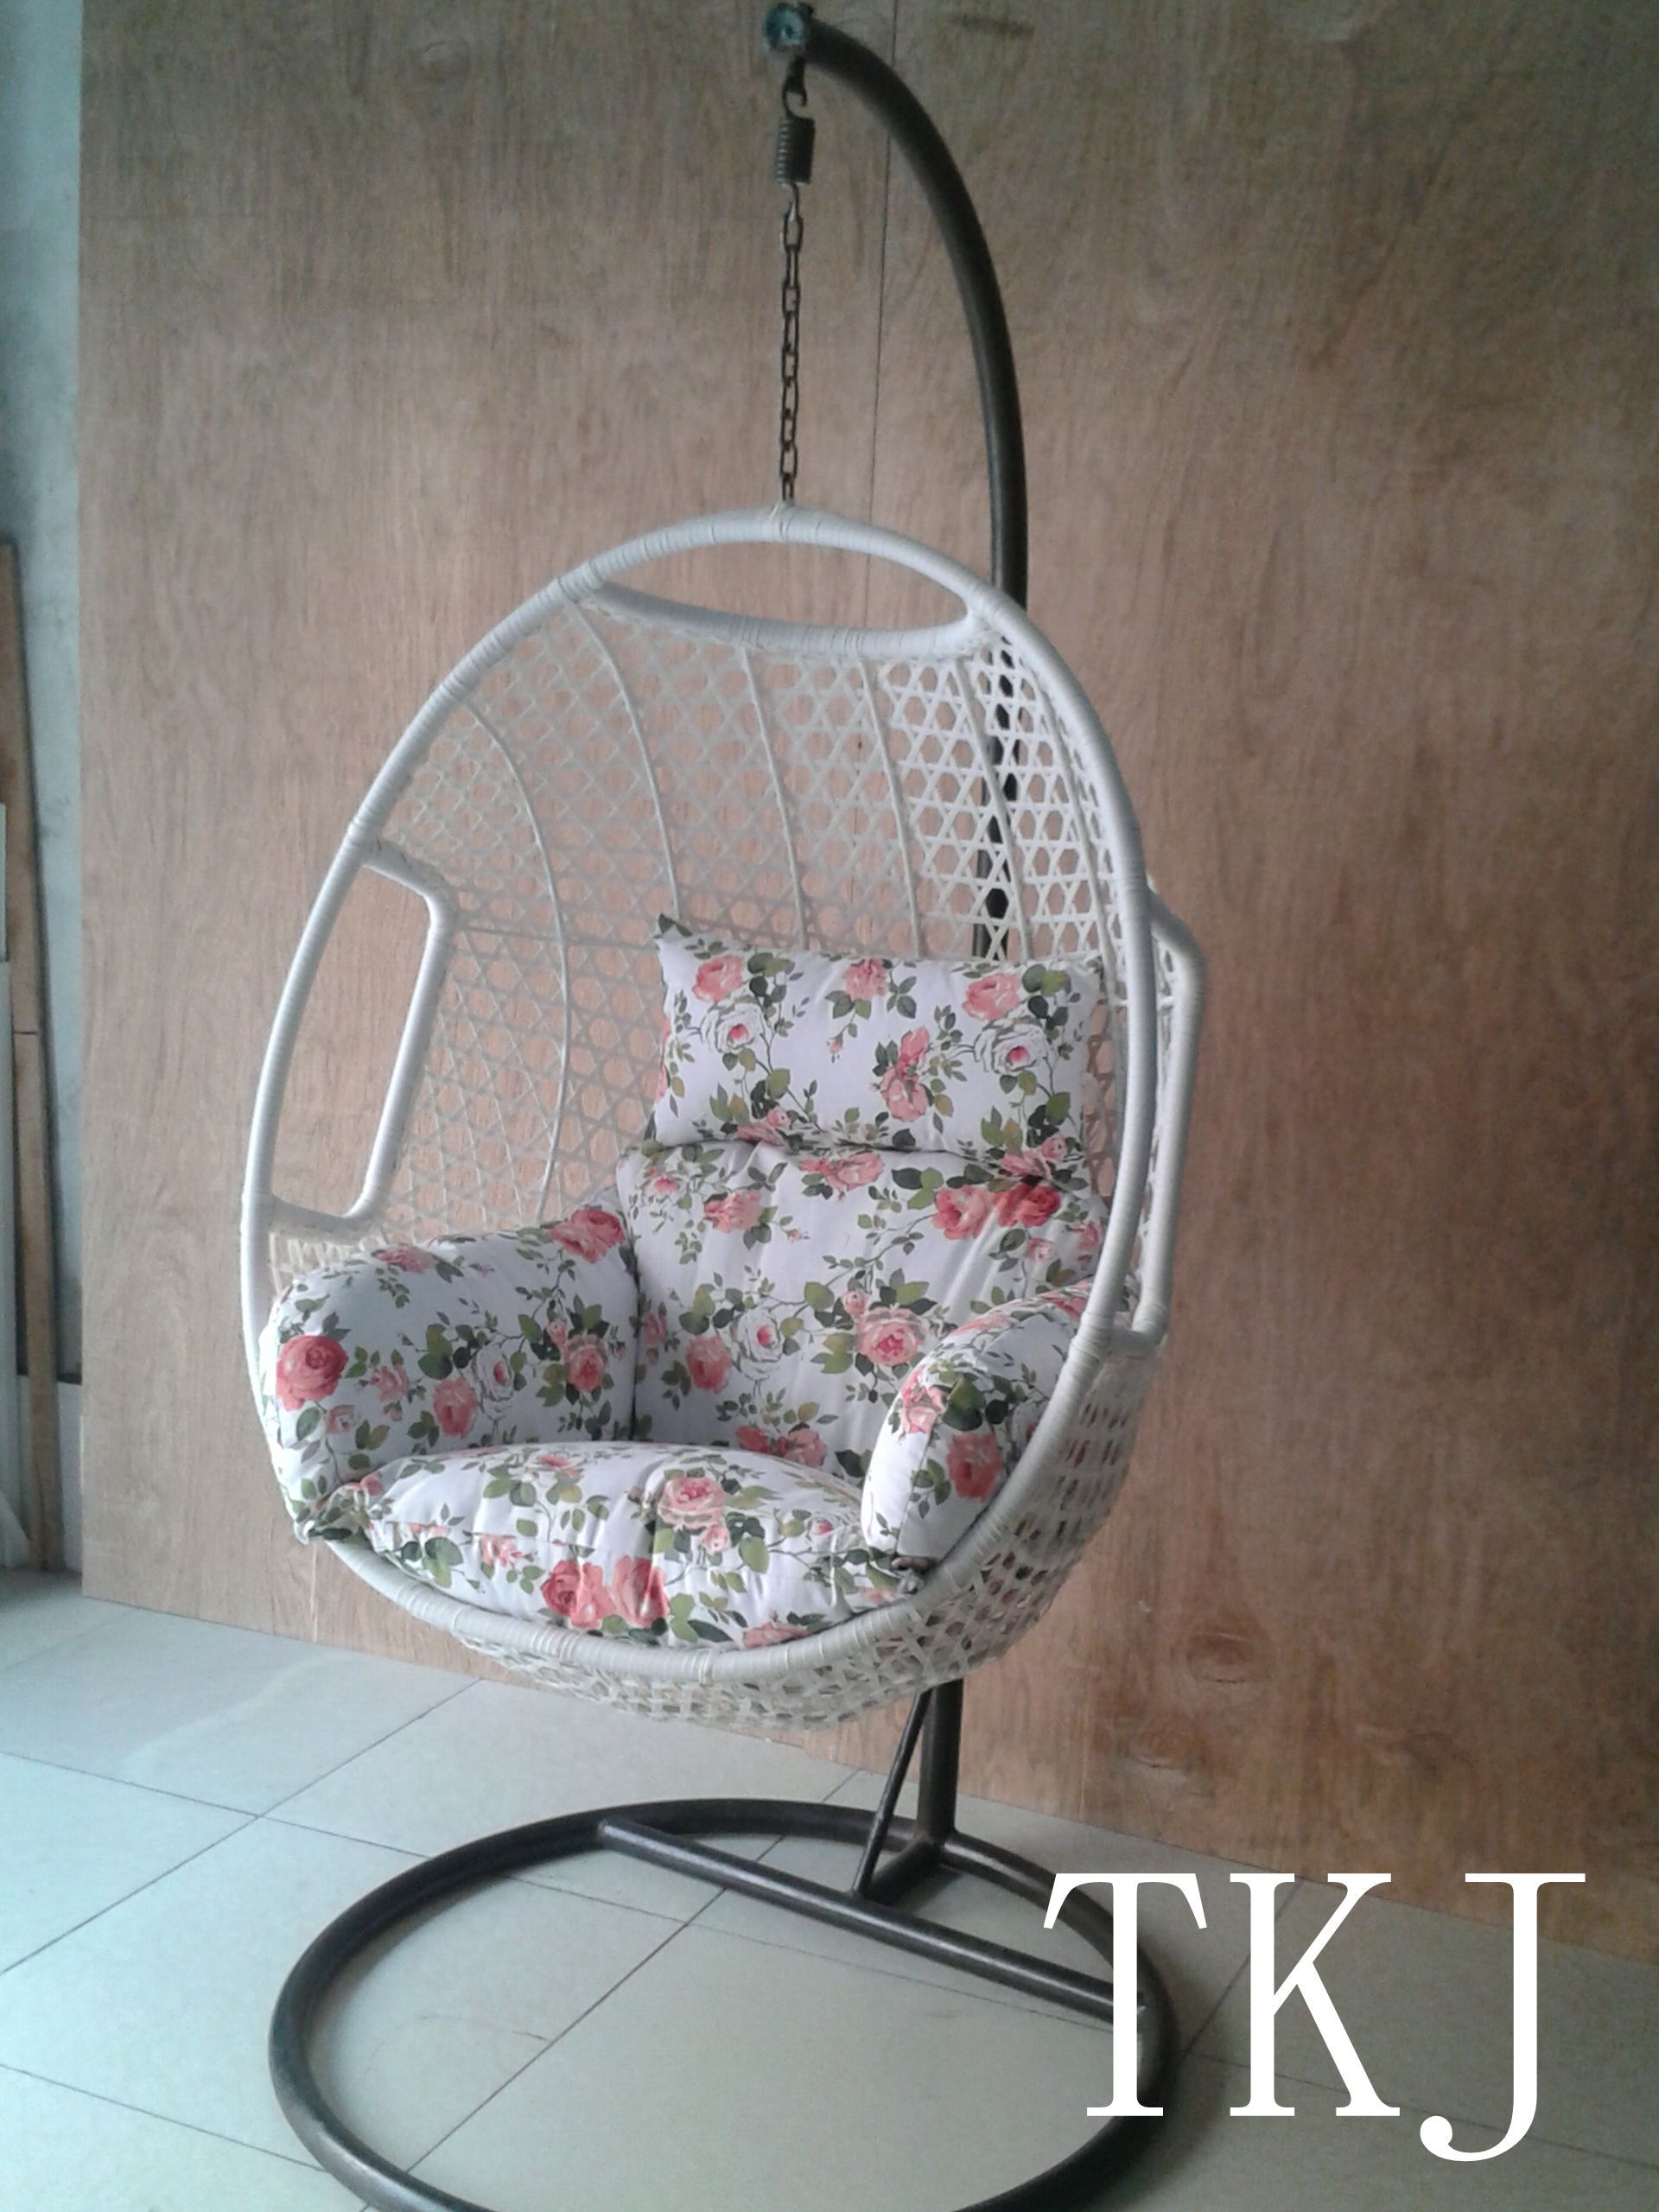 Swing Chair With Stand Bangalore Best Baby Uk Hanging Out In Style 20 Awesome Indoor Ideas The Chairs And Design